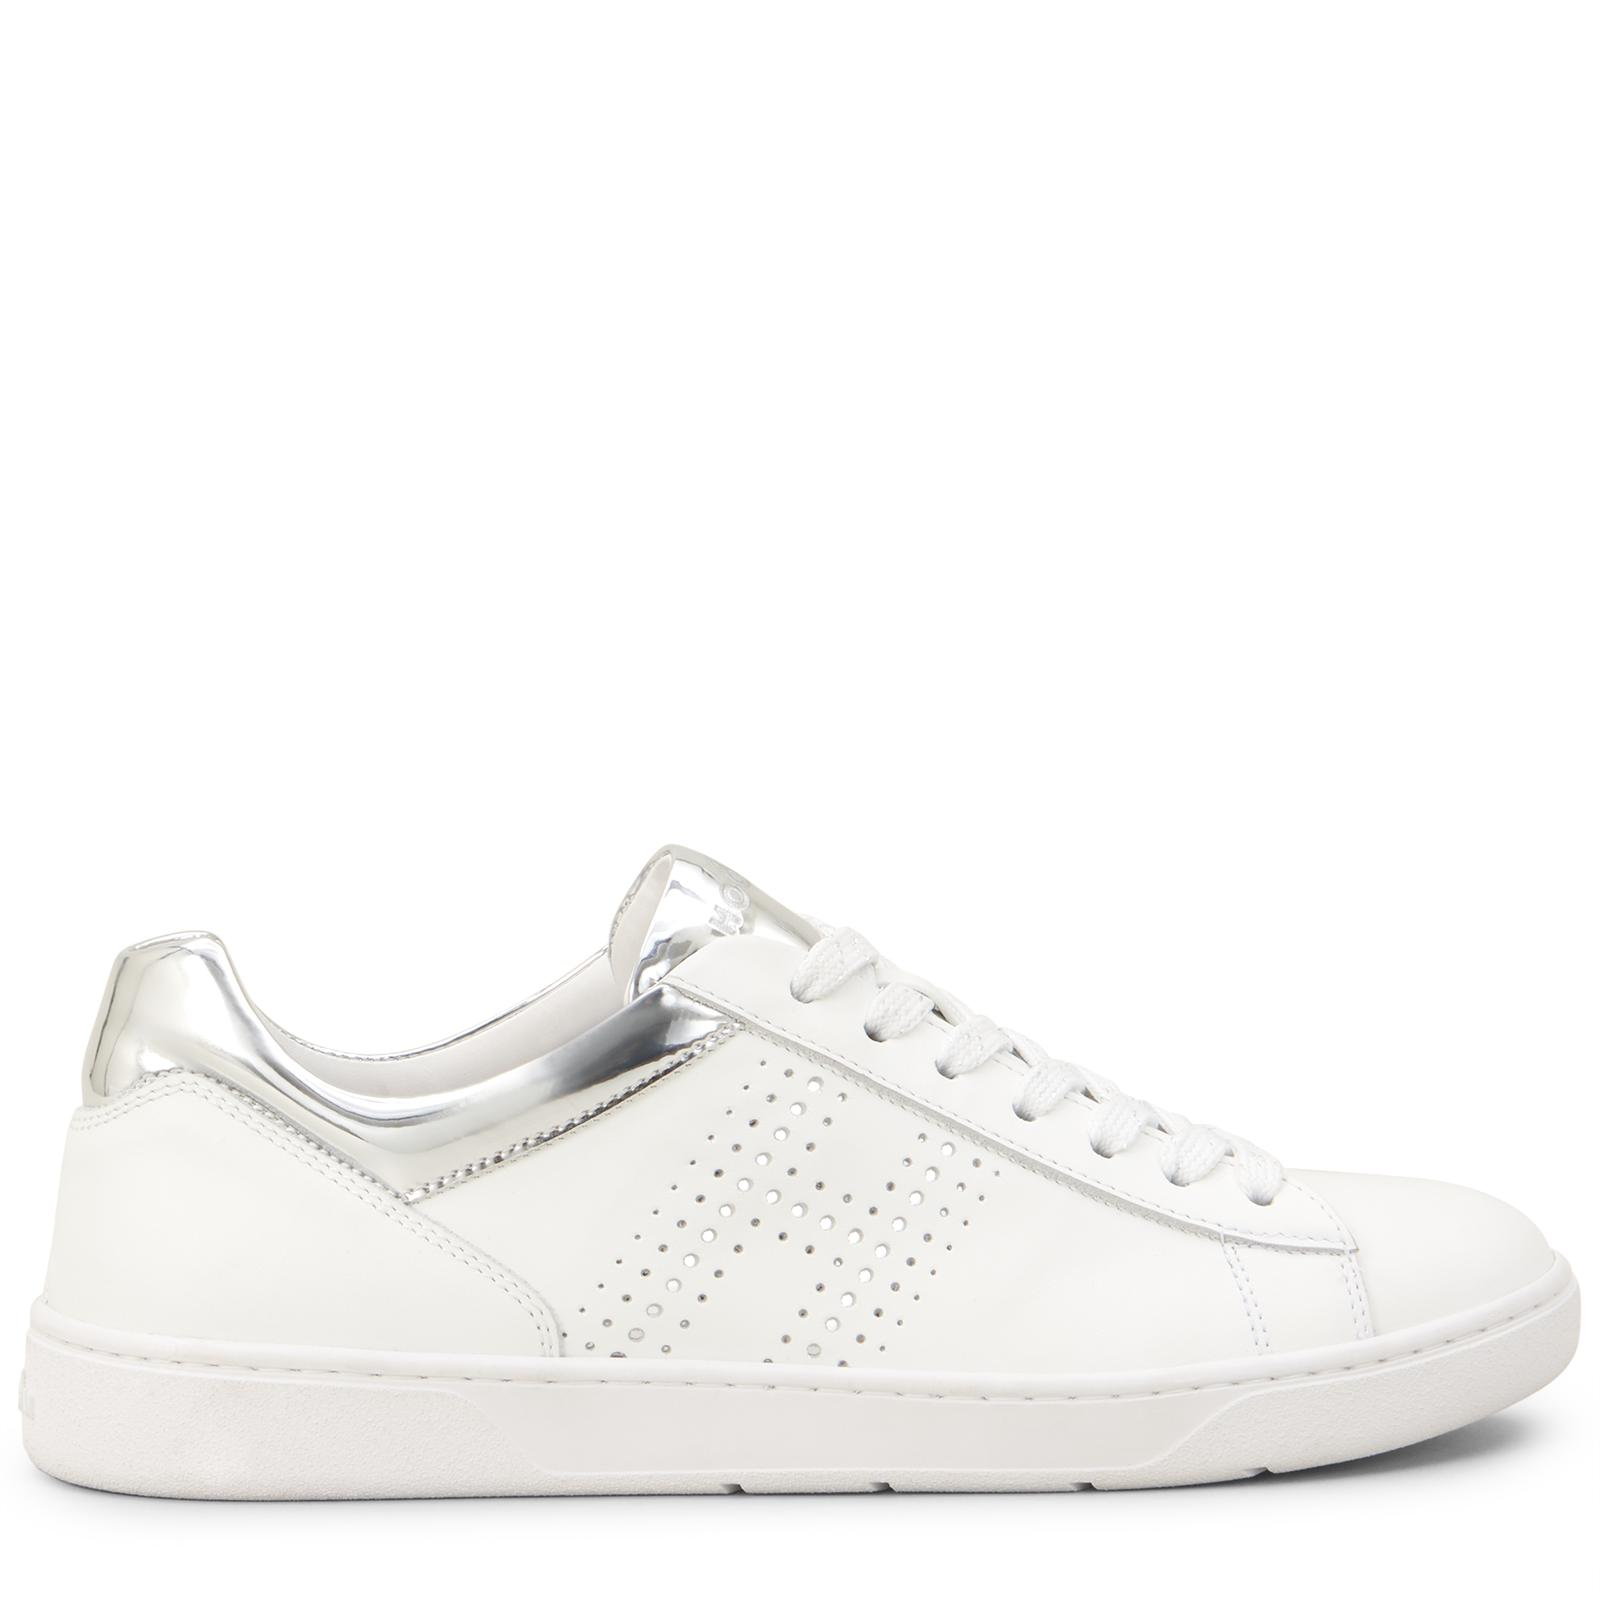 Hogan Leather H327 in Silver,White (White) - Lyst